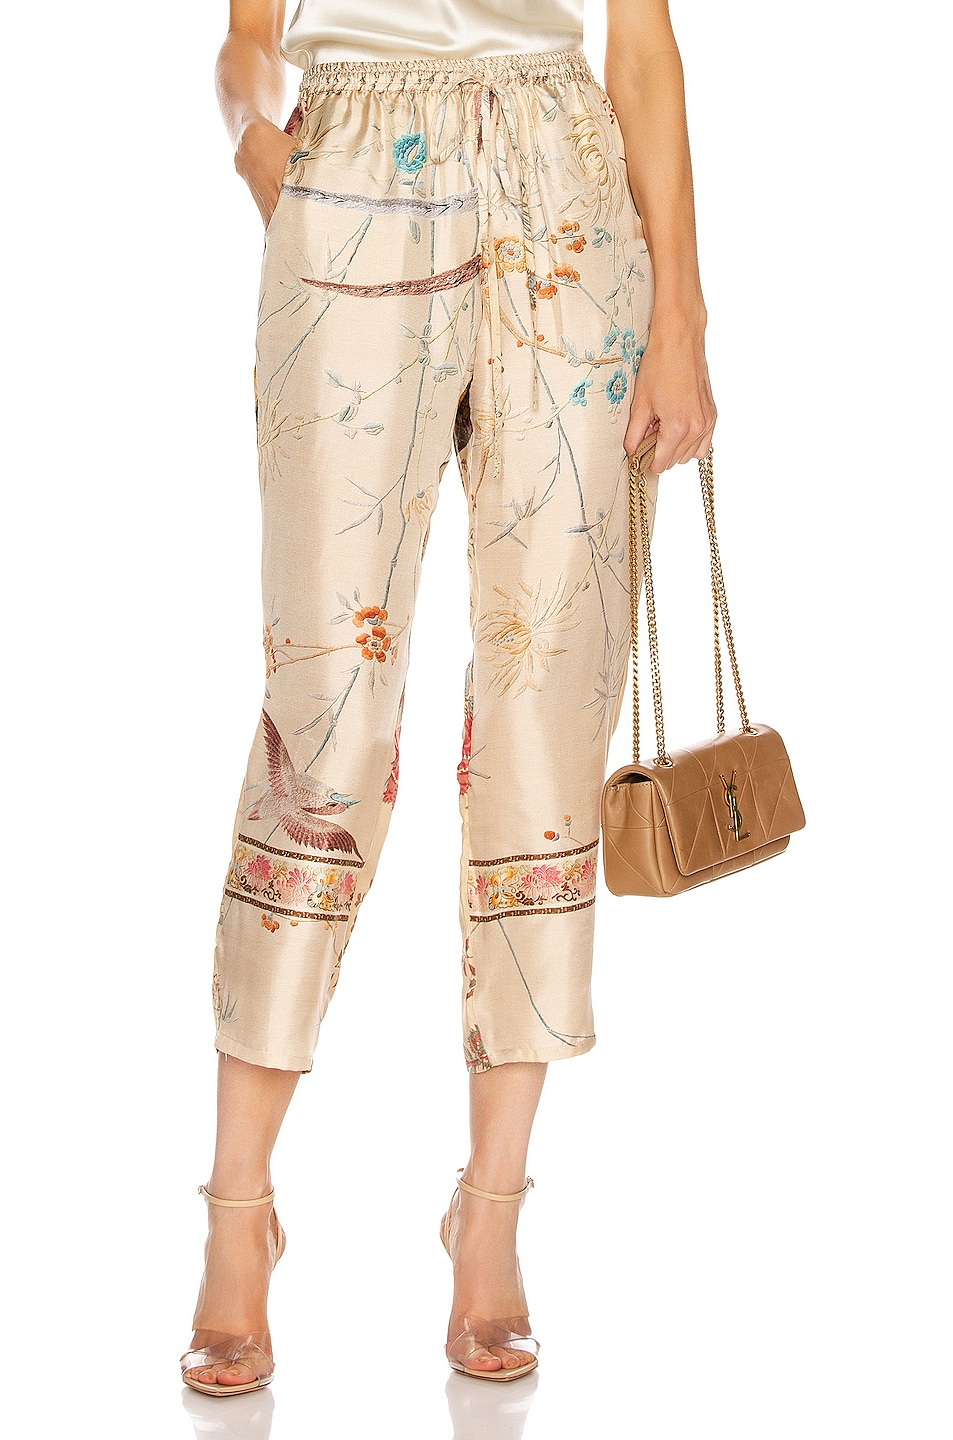 Image 1 of Pierre-Louis Mascia Alow Ultrawash Pant in Multi